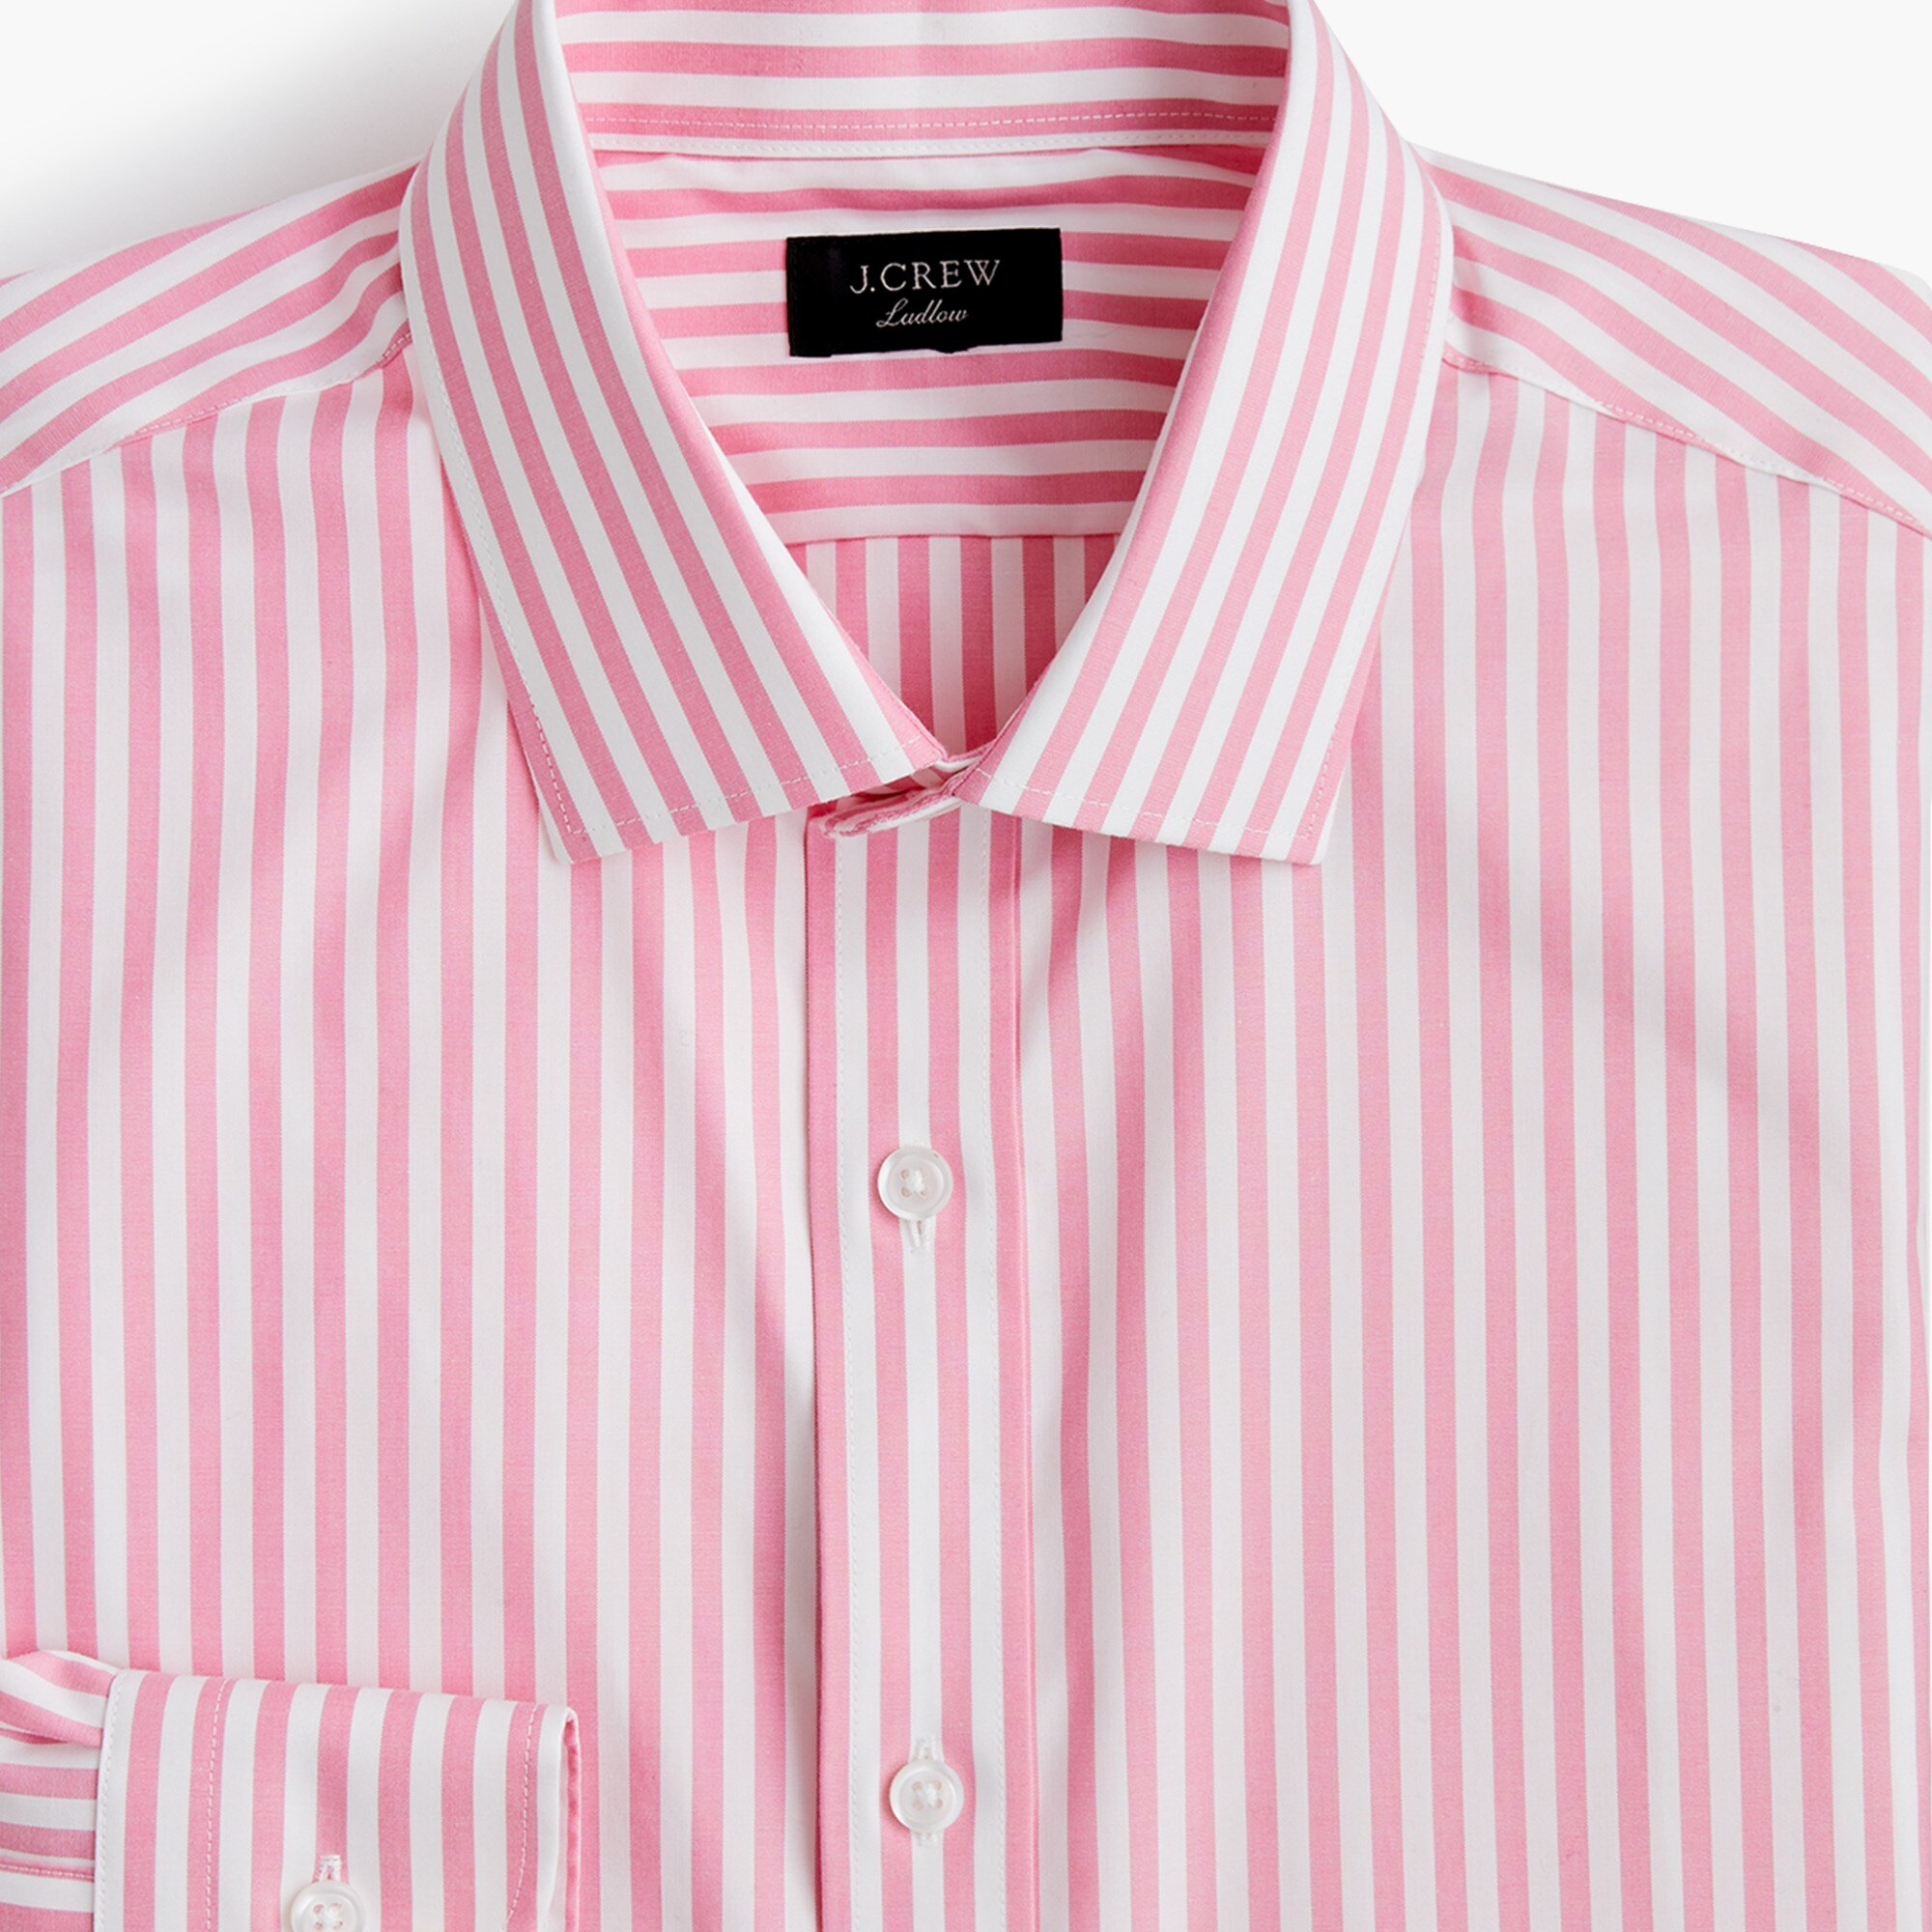 mens Ludlow Slim-fit stretch two-ply easy-care cotton dress shirt in pink stripe